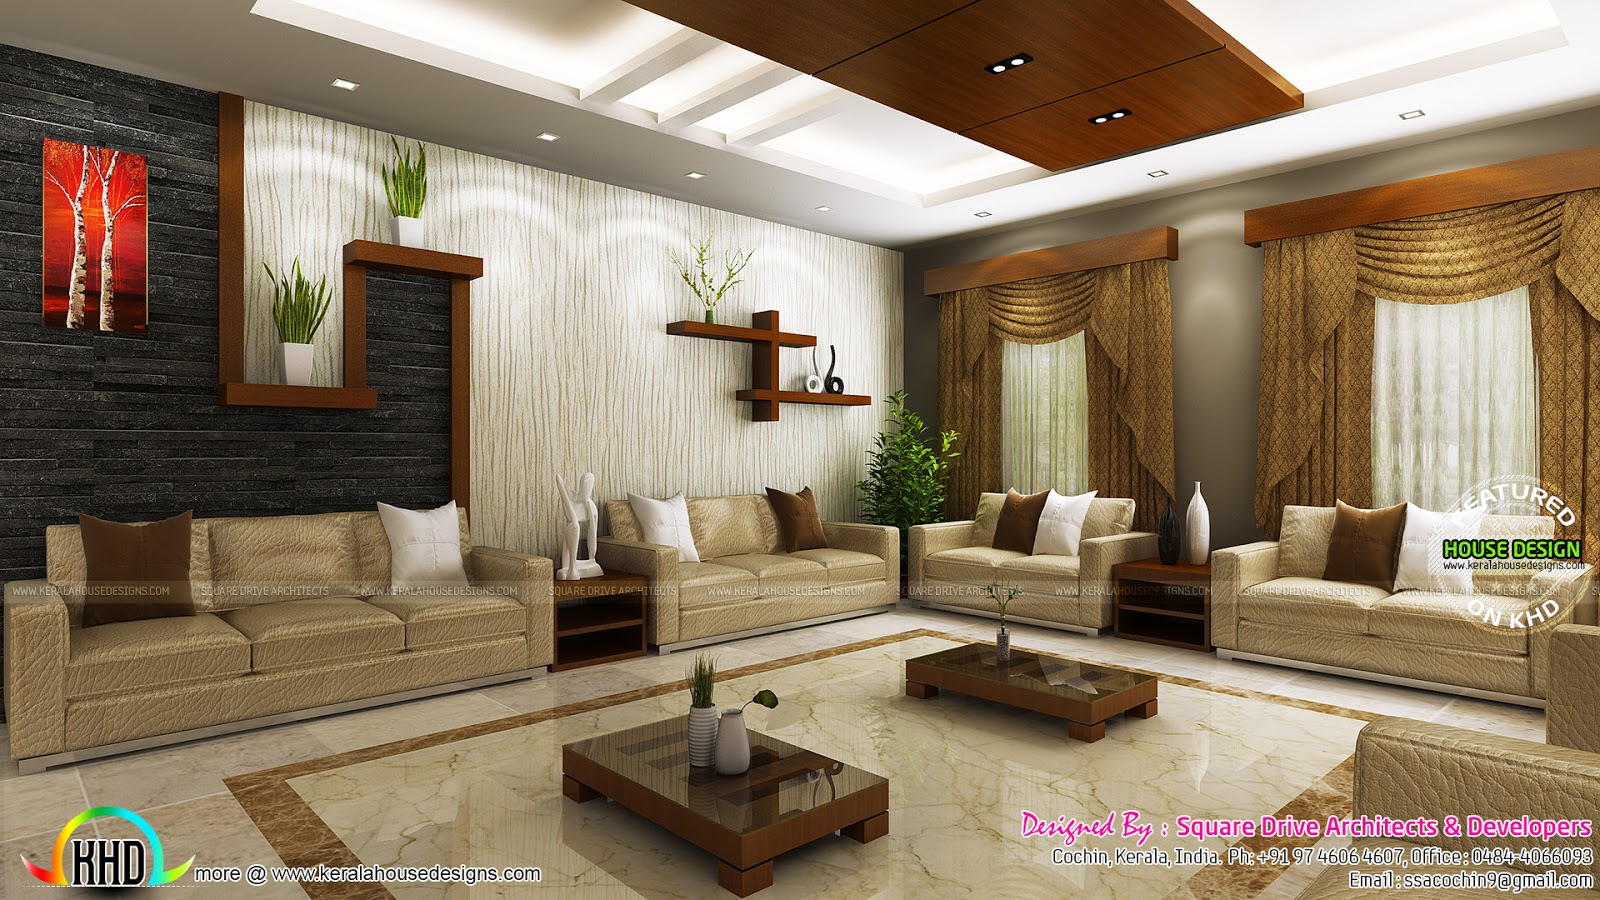 Interior Designs Gallery Stunning Home Interiors In Cochin Kerala Home Design And